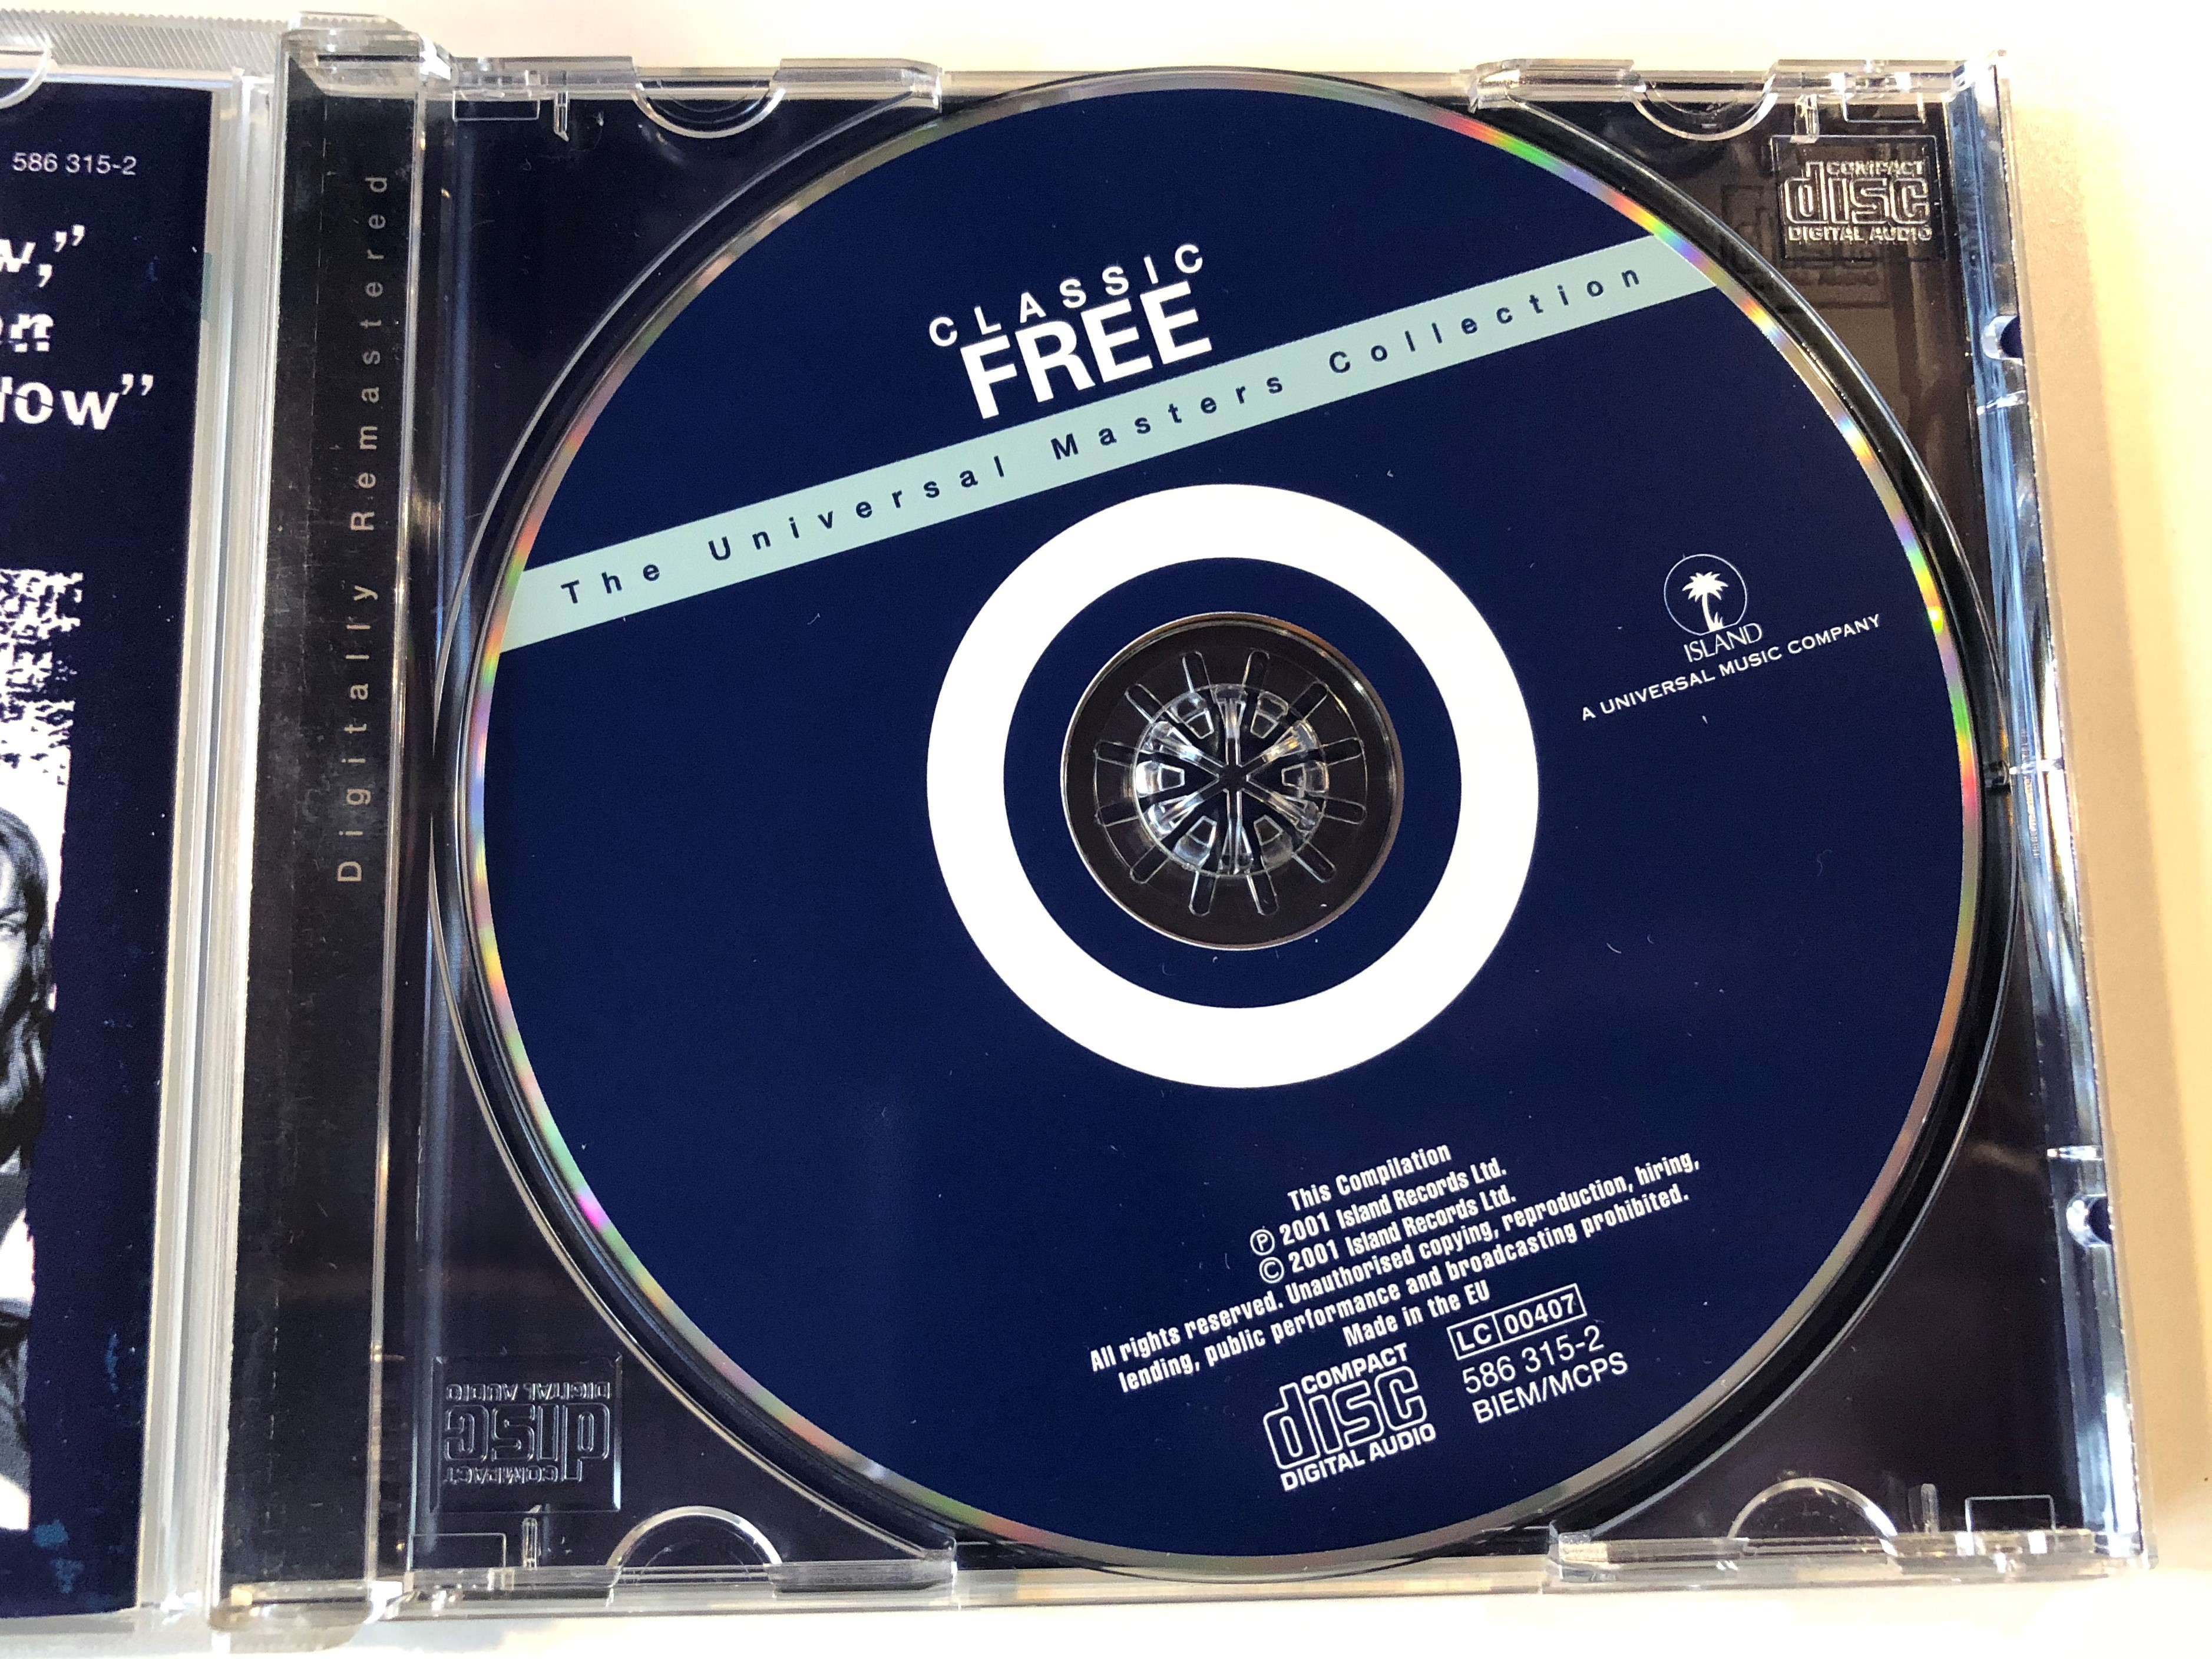 classic-free-the-universal-masters-collection-island-records-audio-cd-2001-586-315-2-2-.jpg